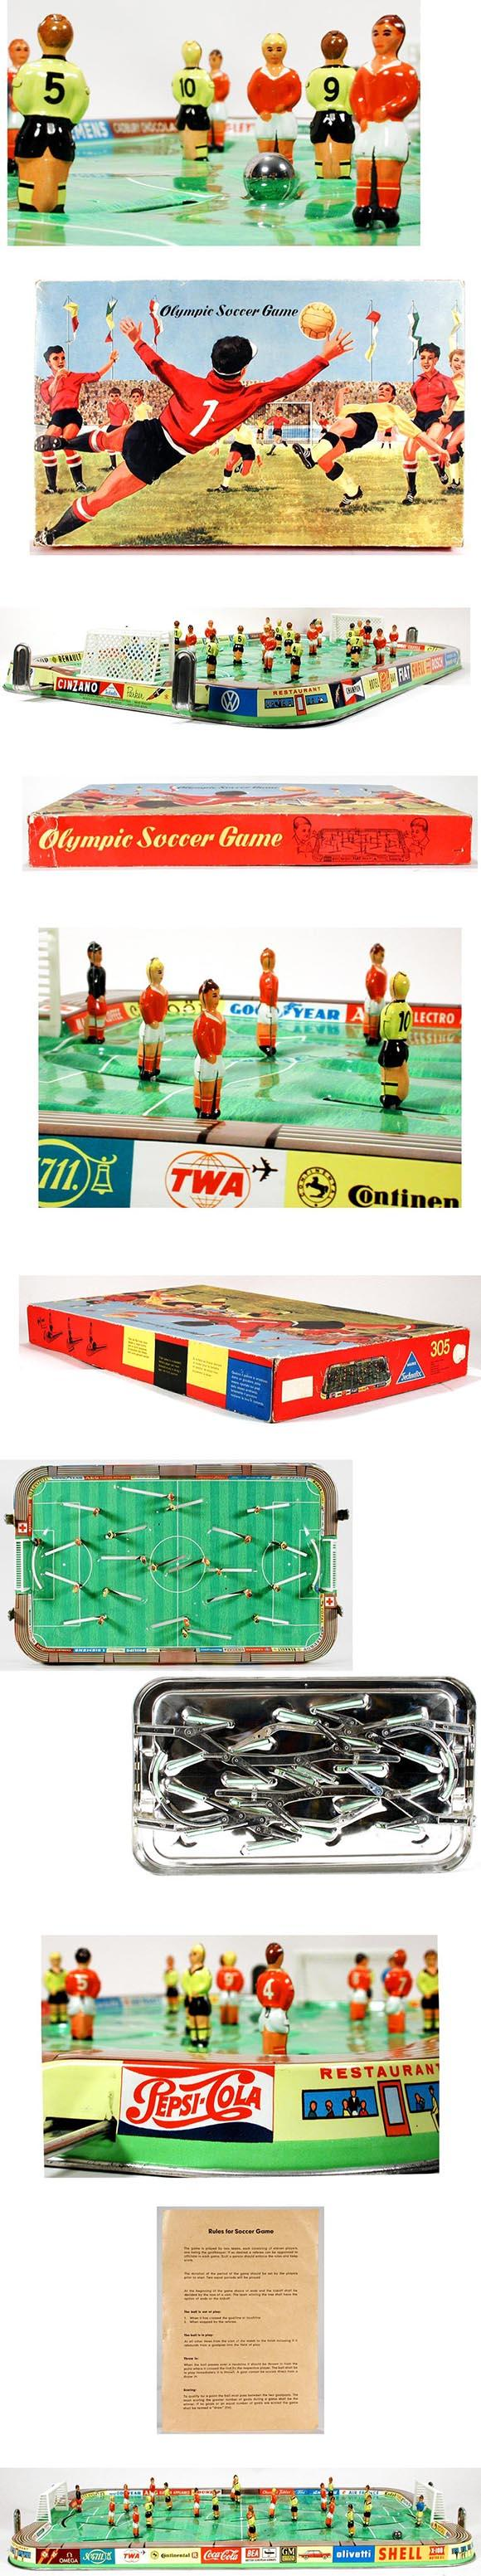 c.1964 Technofix, Olympic Soccer Game in Original Box